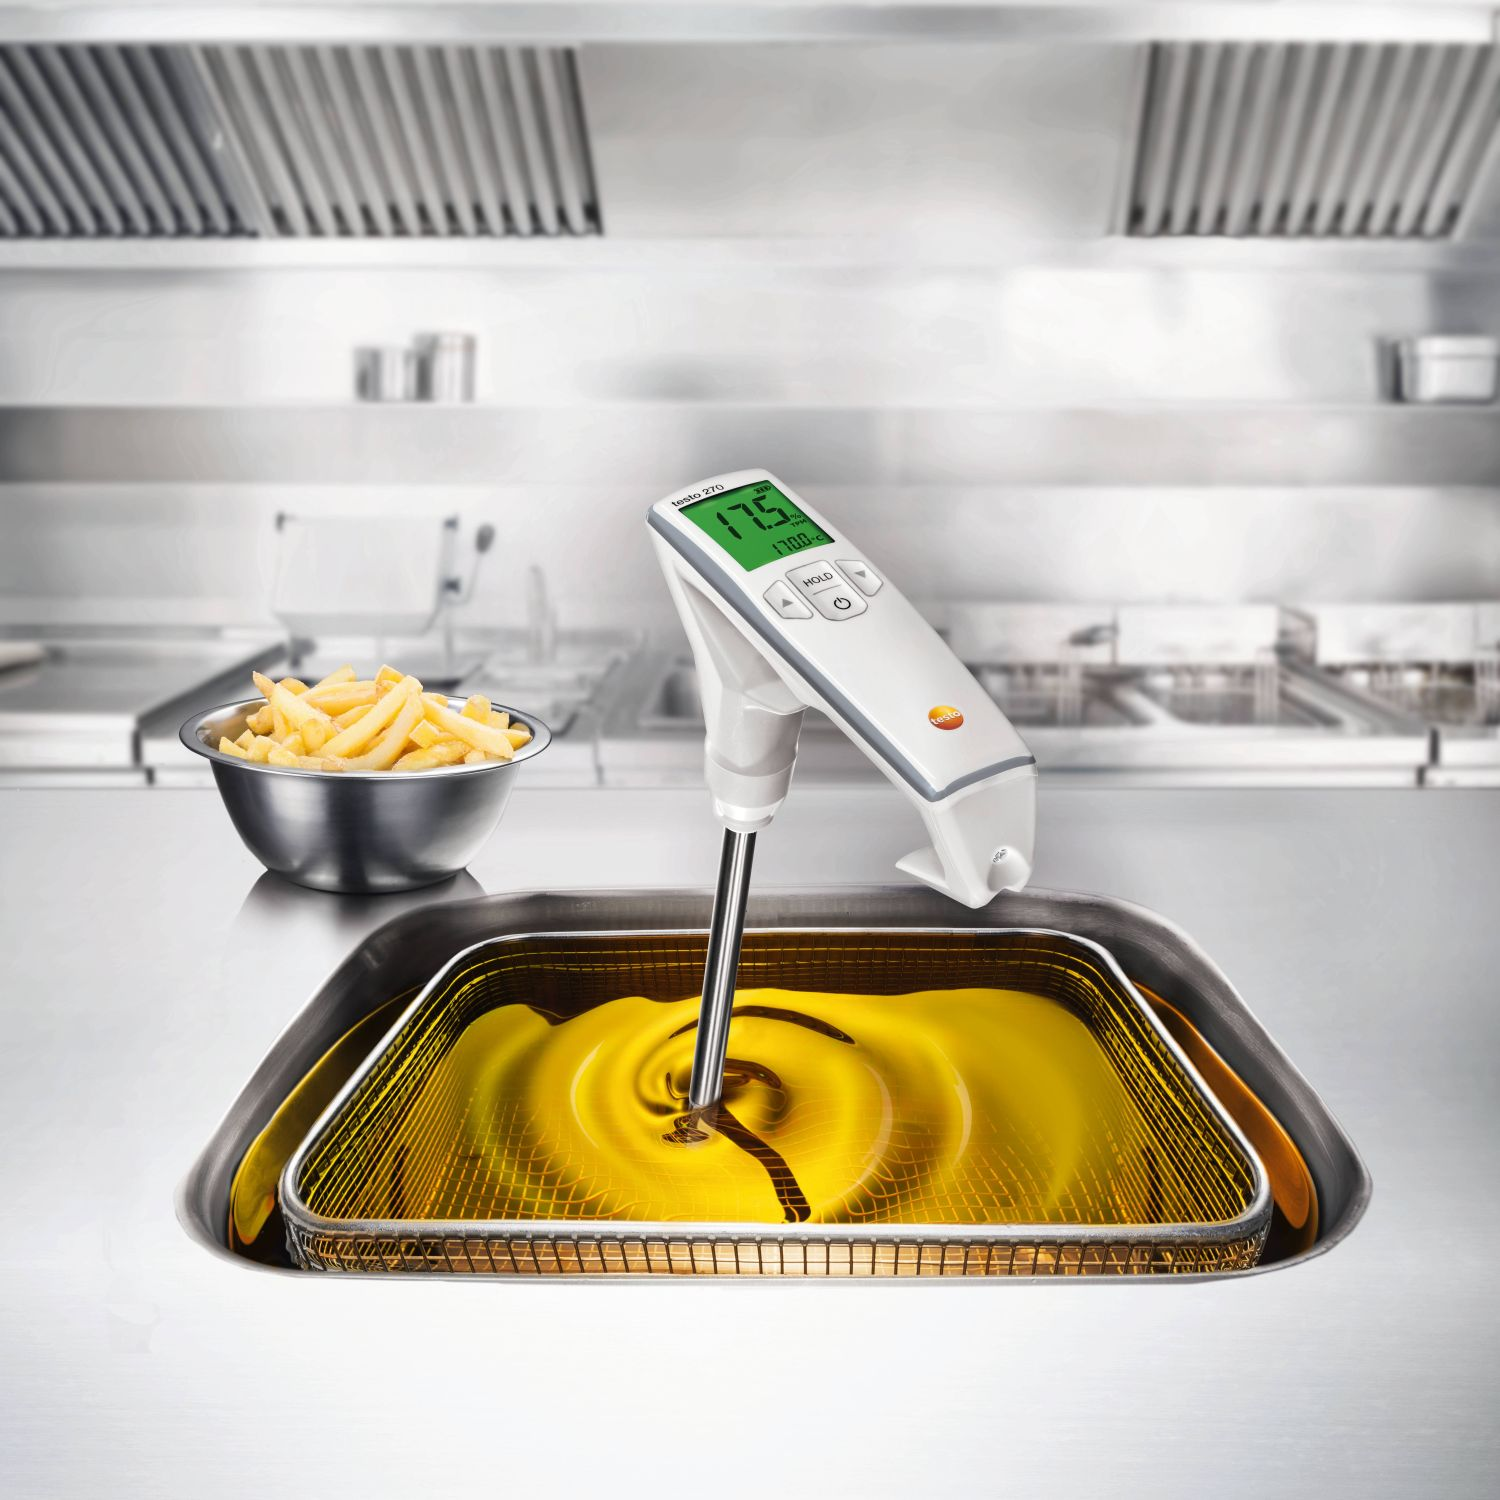 Discover the testo 270 cooking oil tester